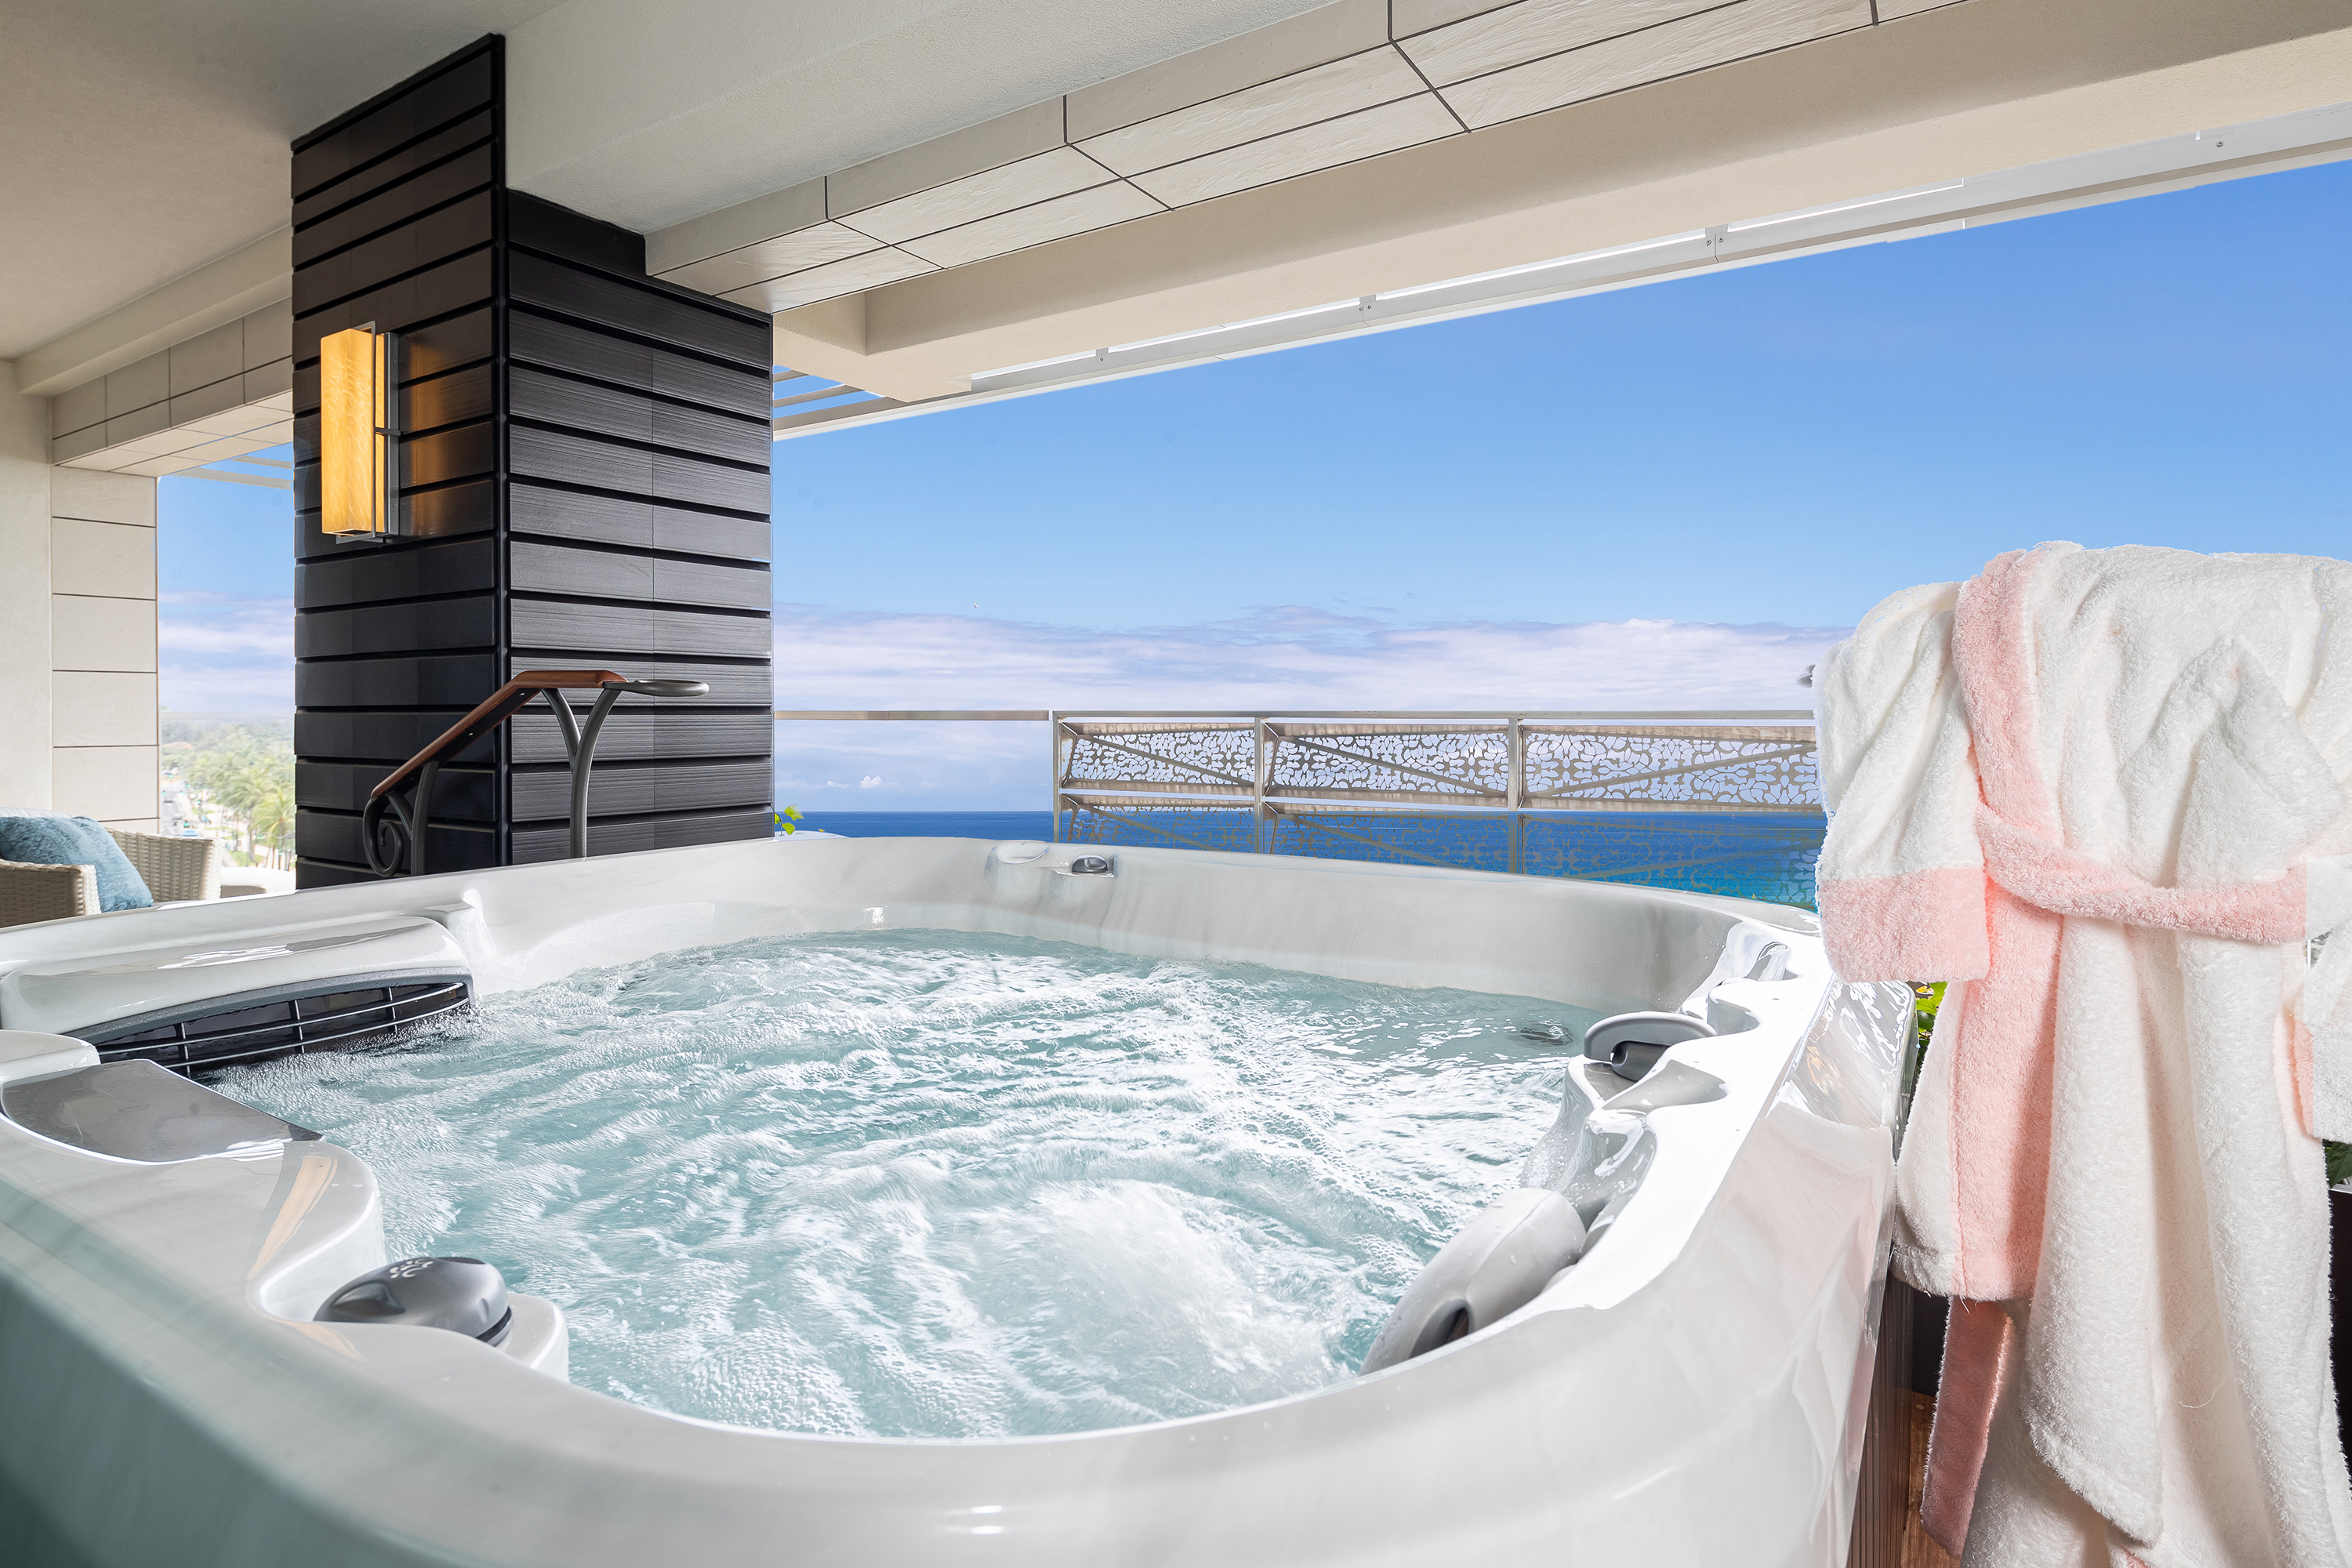 Jacuzzi on balcony with ocean views